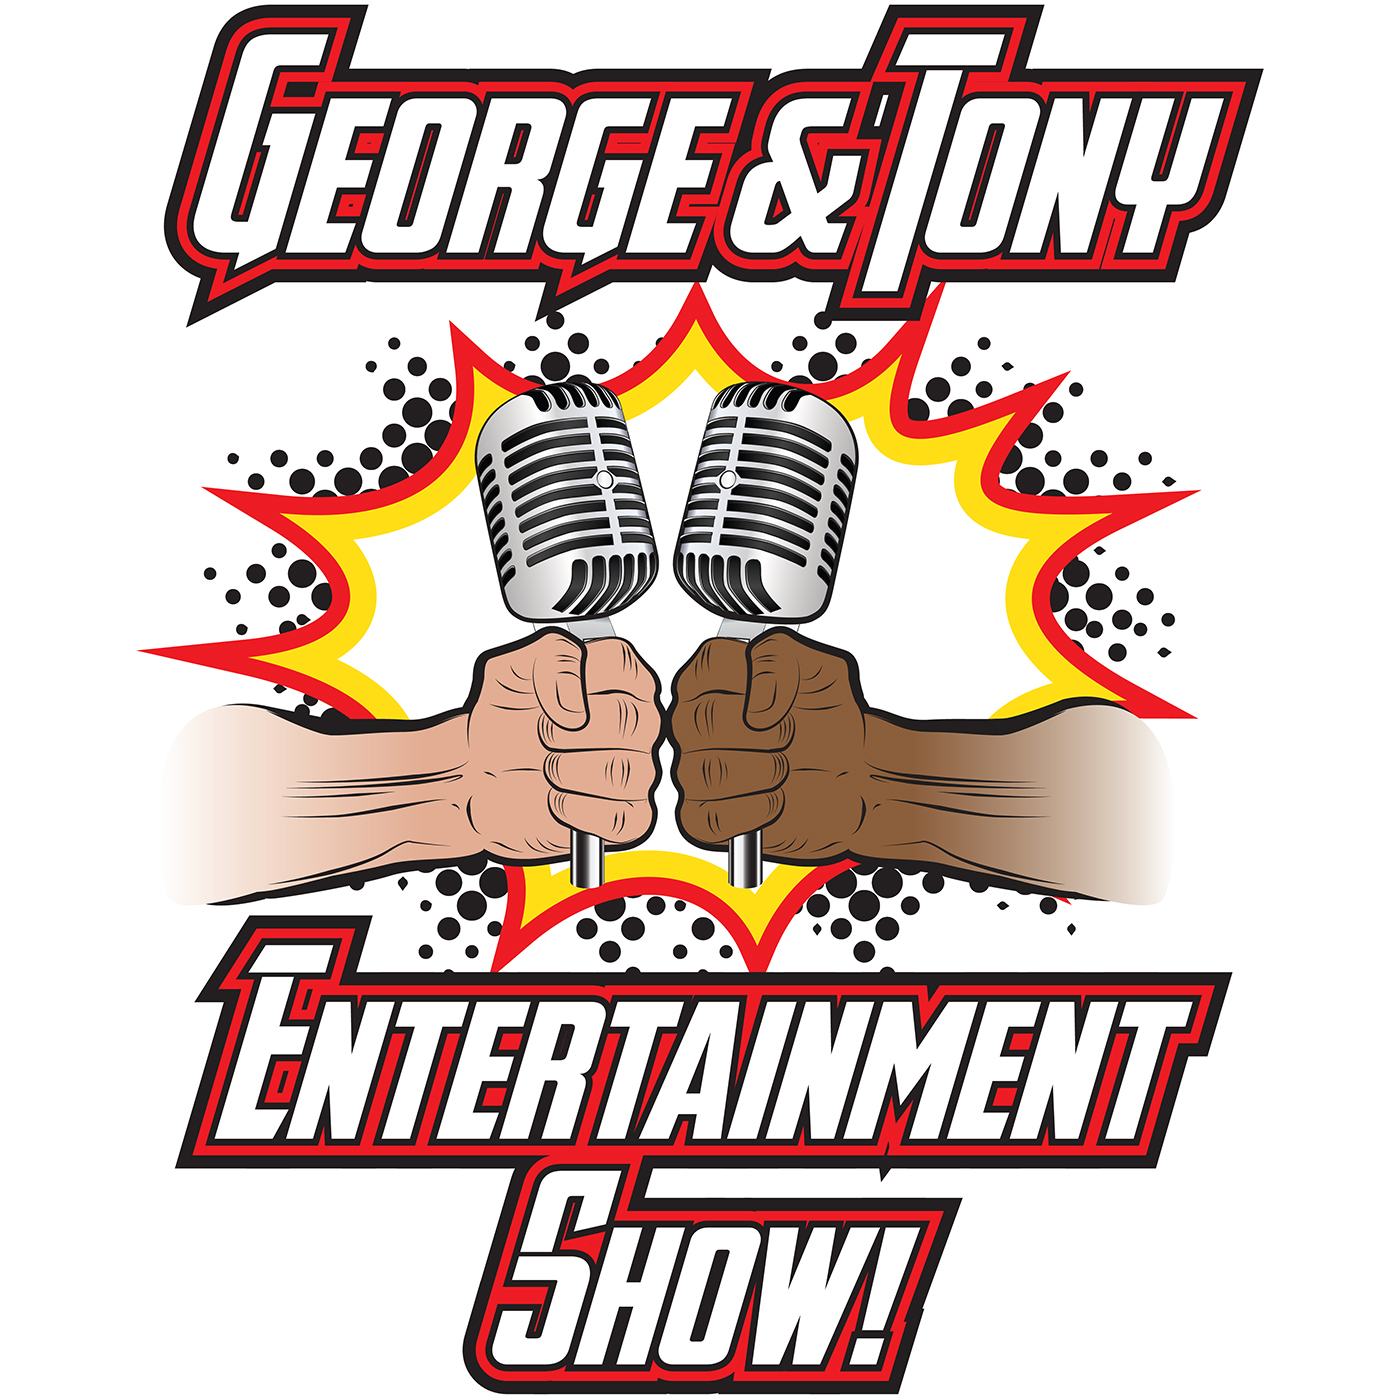 George and Tony Entertainment Show #77